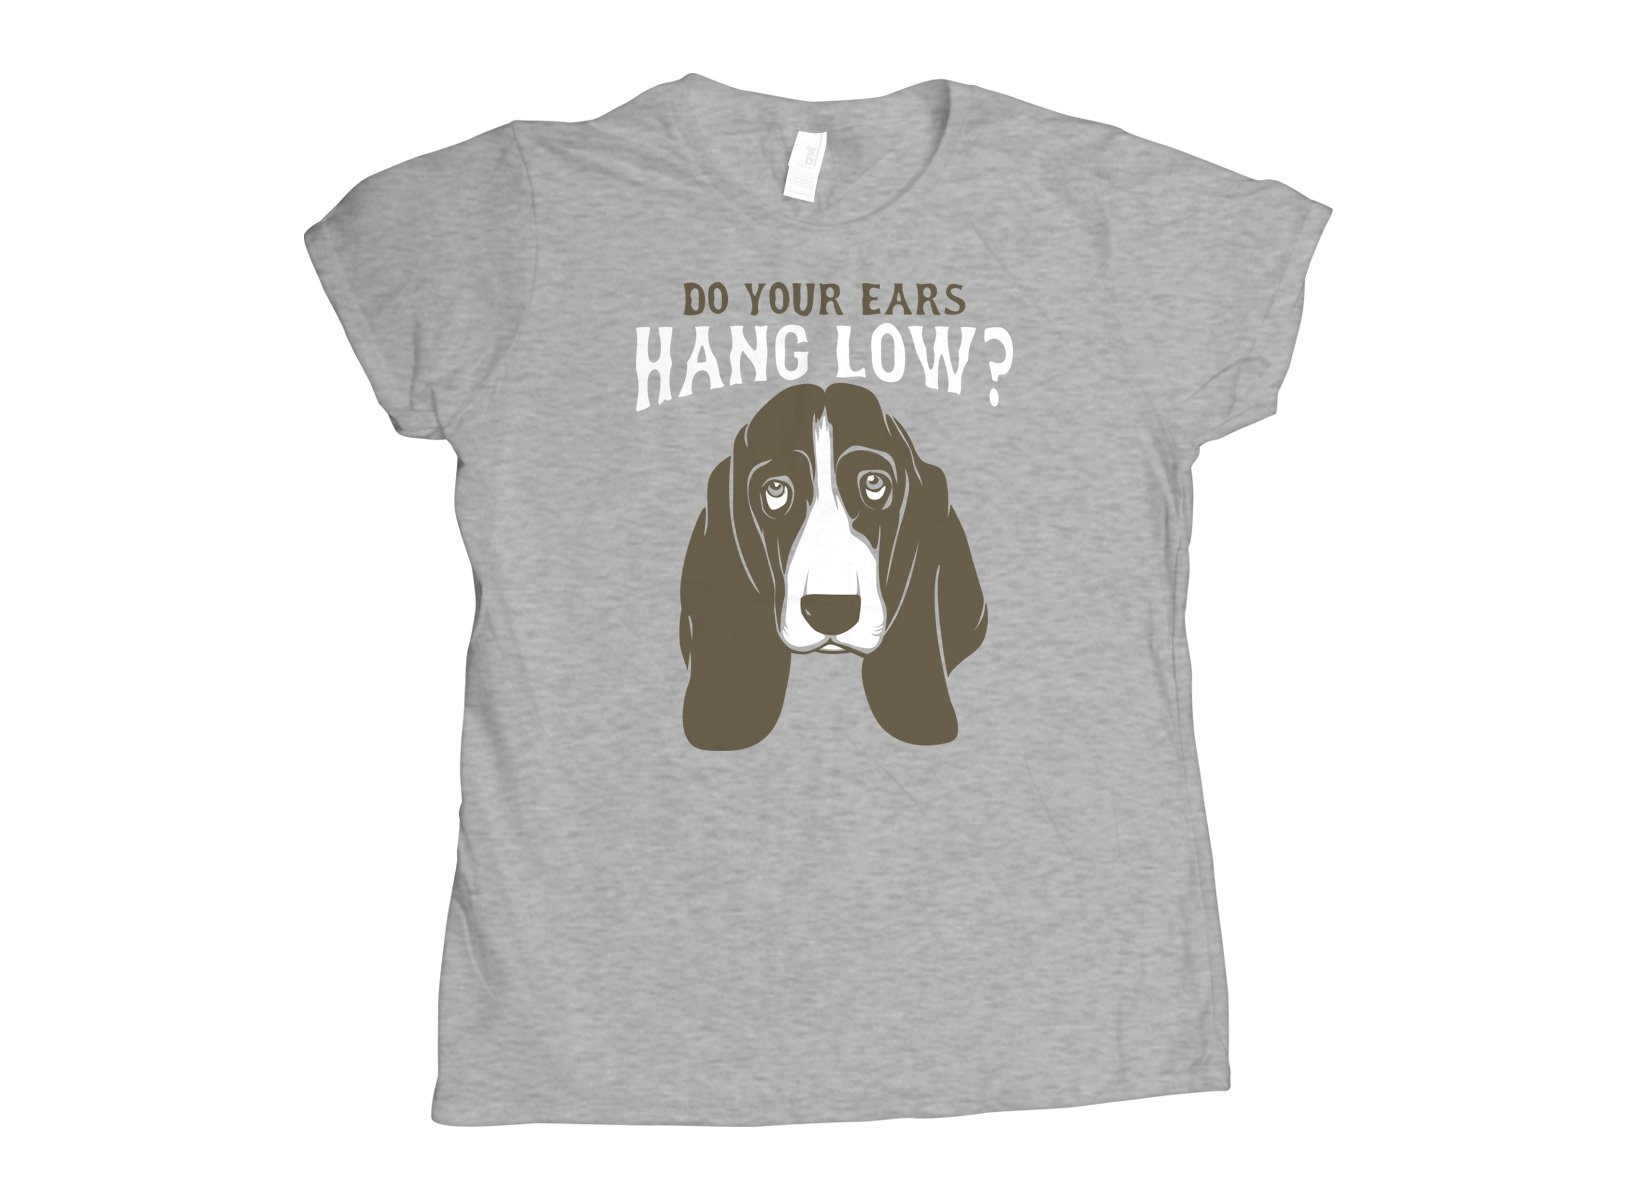 Do Your Ears Hang Low? on Womens T-Shirt